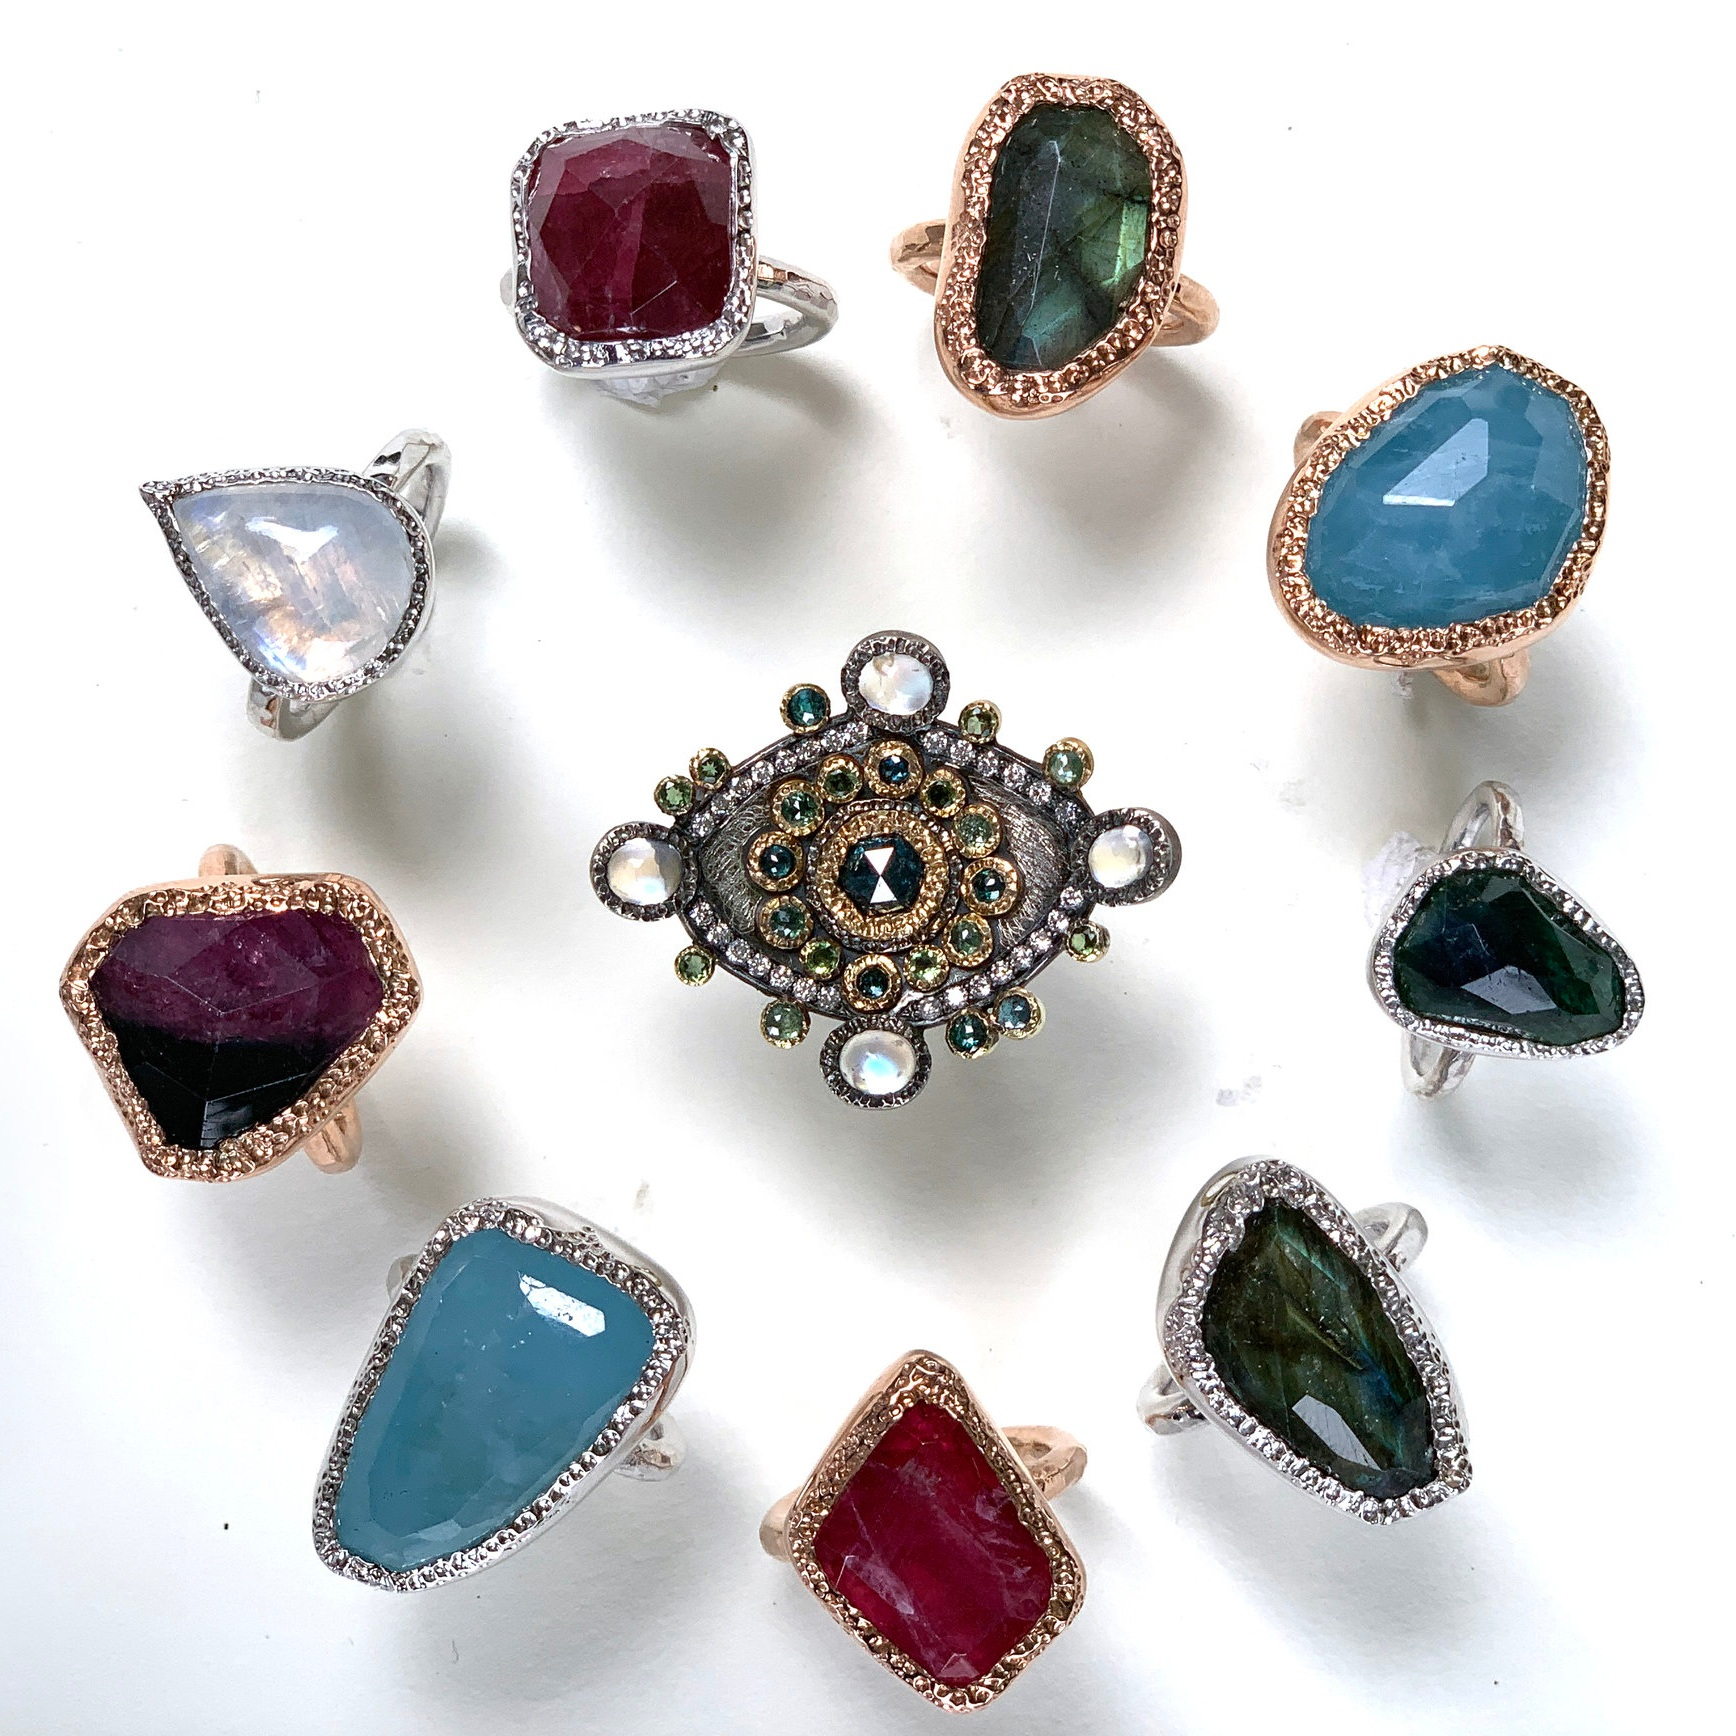 Stone Setting Fancy Bezels - Learn to make chunky textured bezels, jump ring bezels and cut down bezels